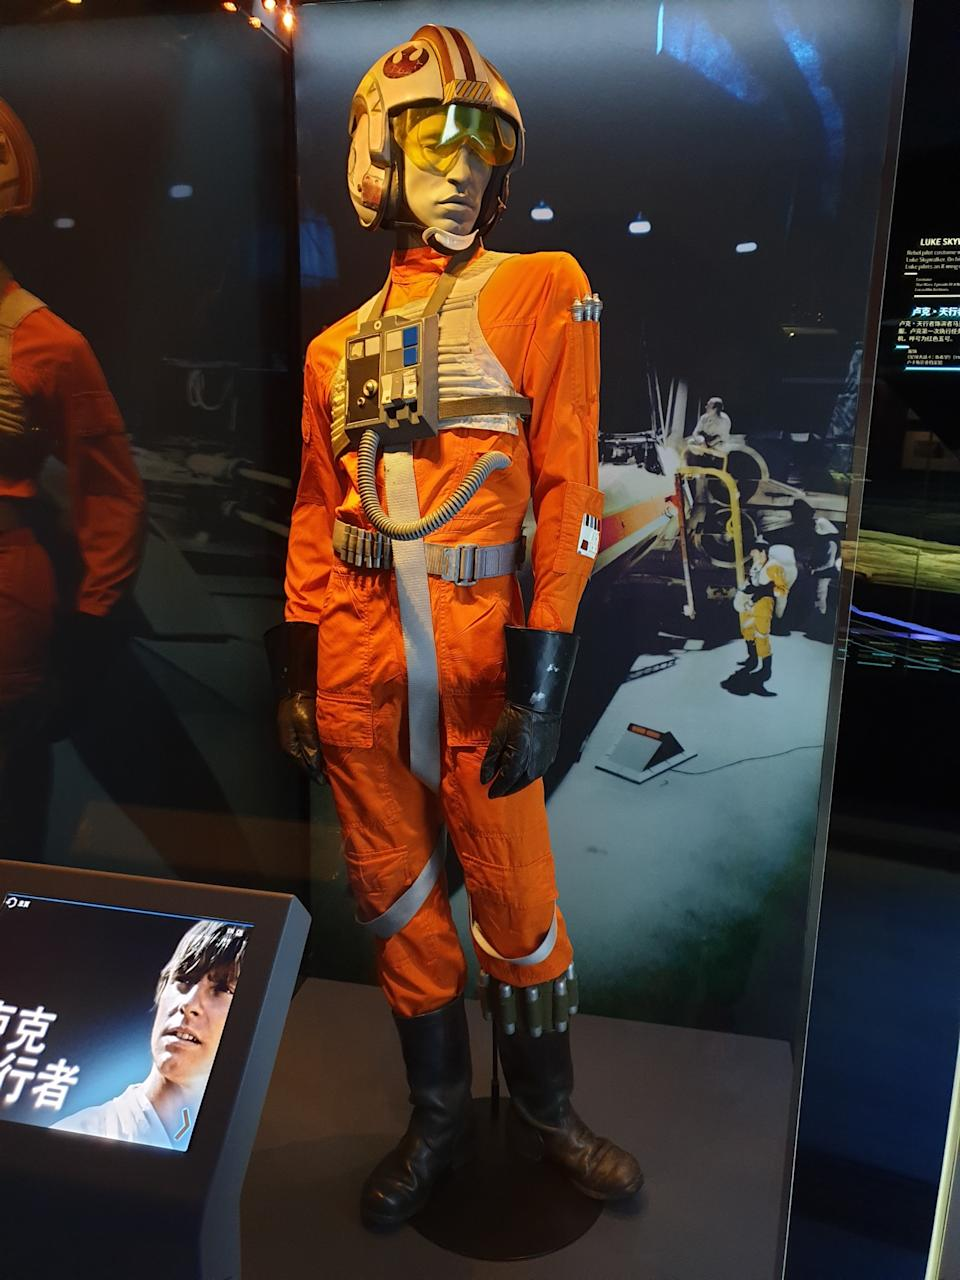 Rebel pilot costume worn by Mark Hamill playing Luke Skywalker in Star Wars: A New Hope at the Star Wars Identities exhibition in Singapore at the Artscience Museum. (Photo: Teng Yong Ping)